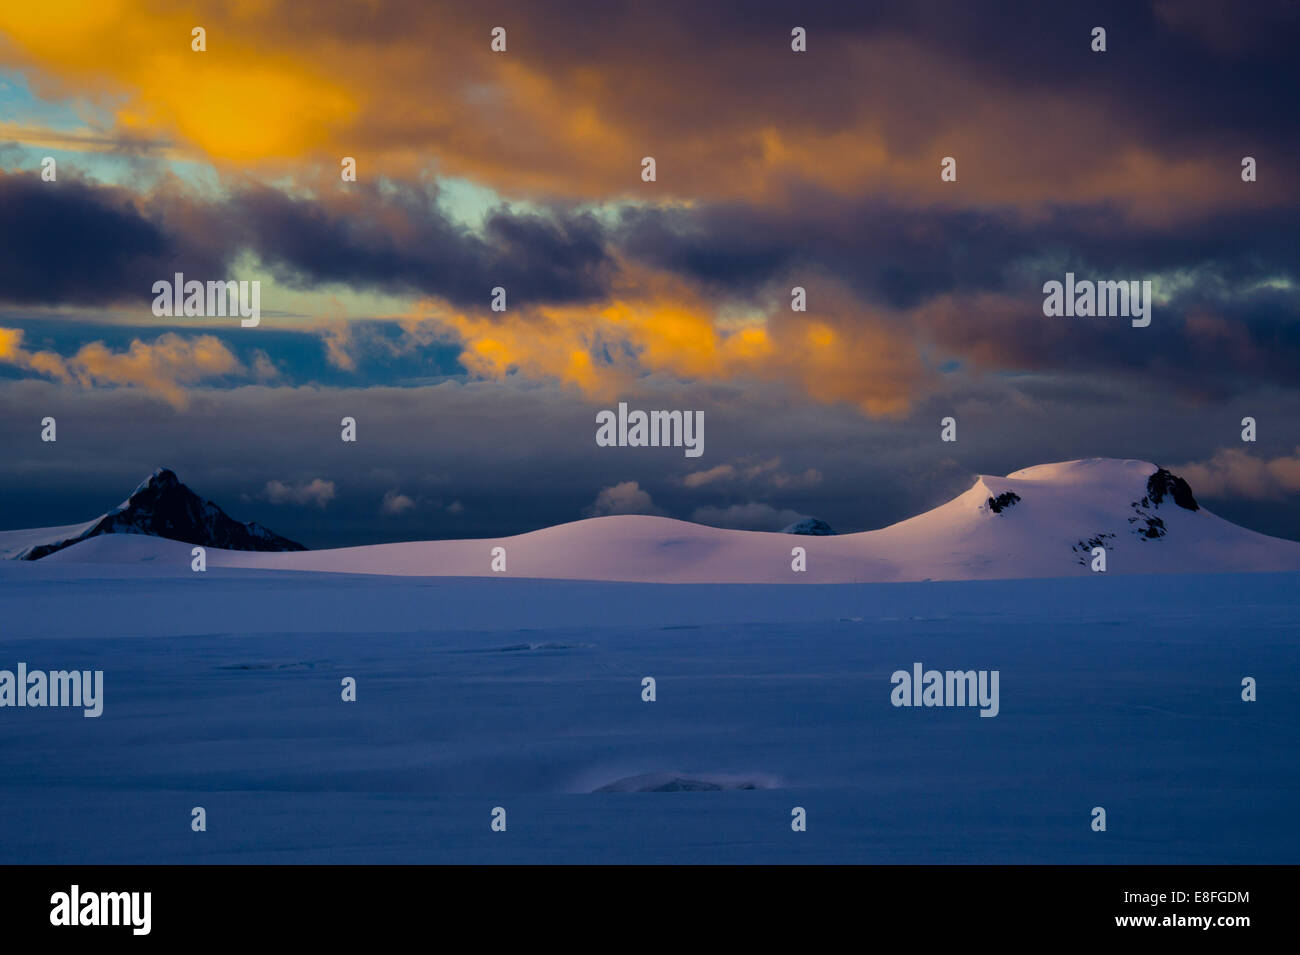 Clouds over snowy mountains - Stock Image